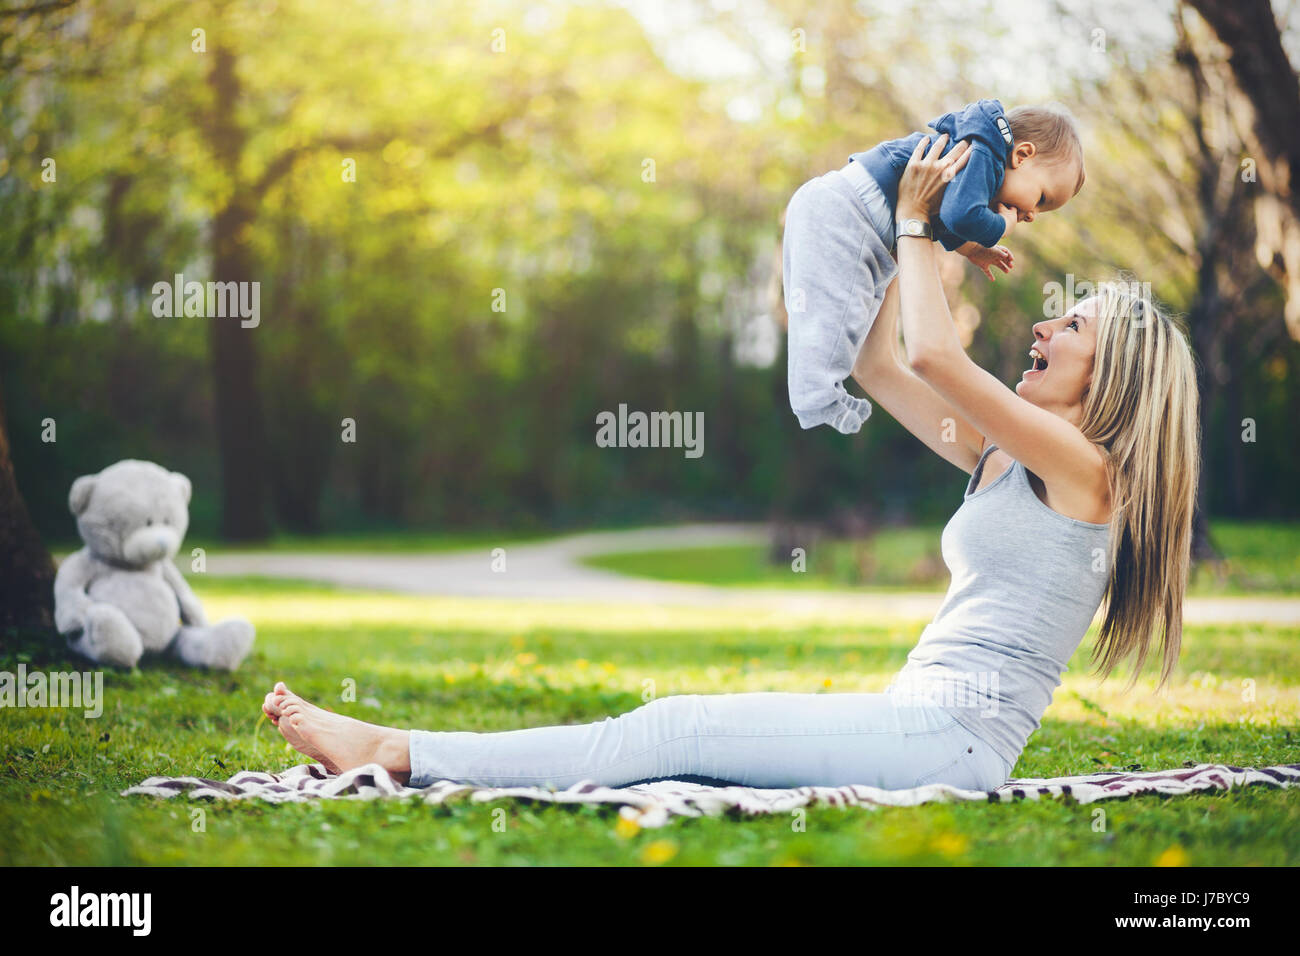 Delighted mother with her one year old son outdoors in a park - Stock Image